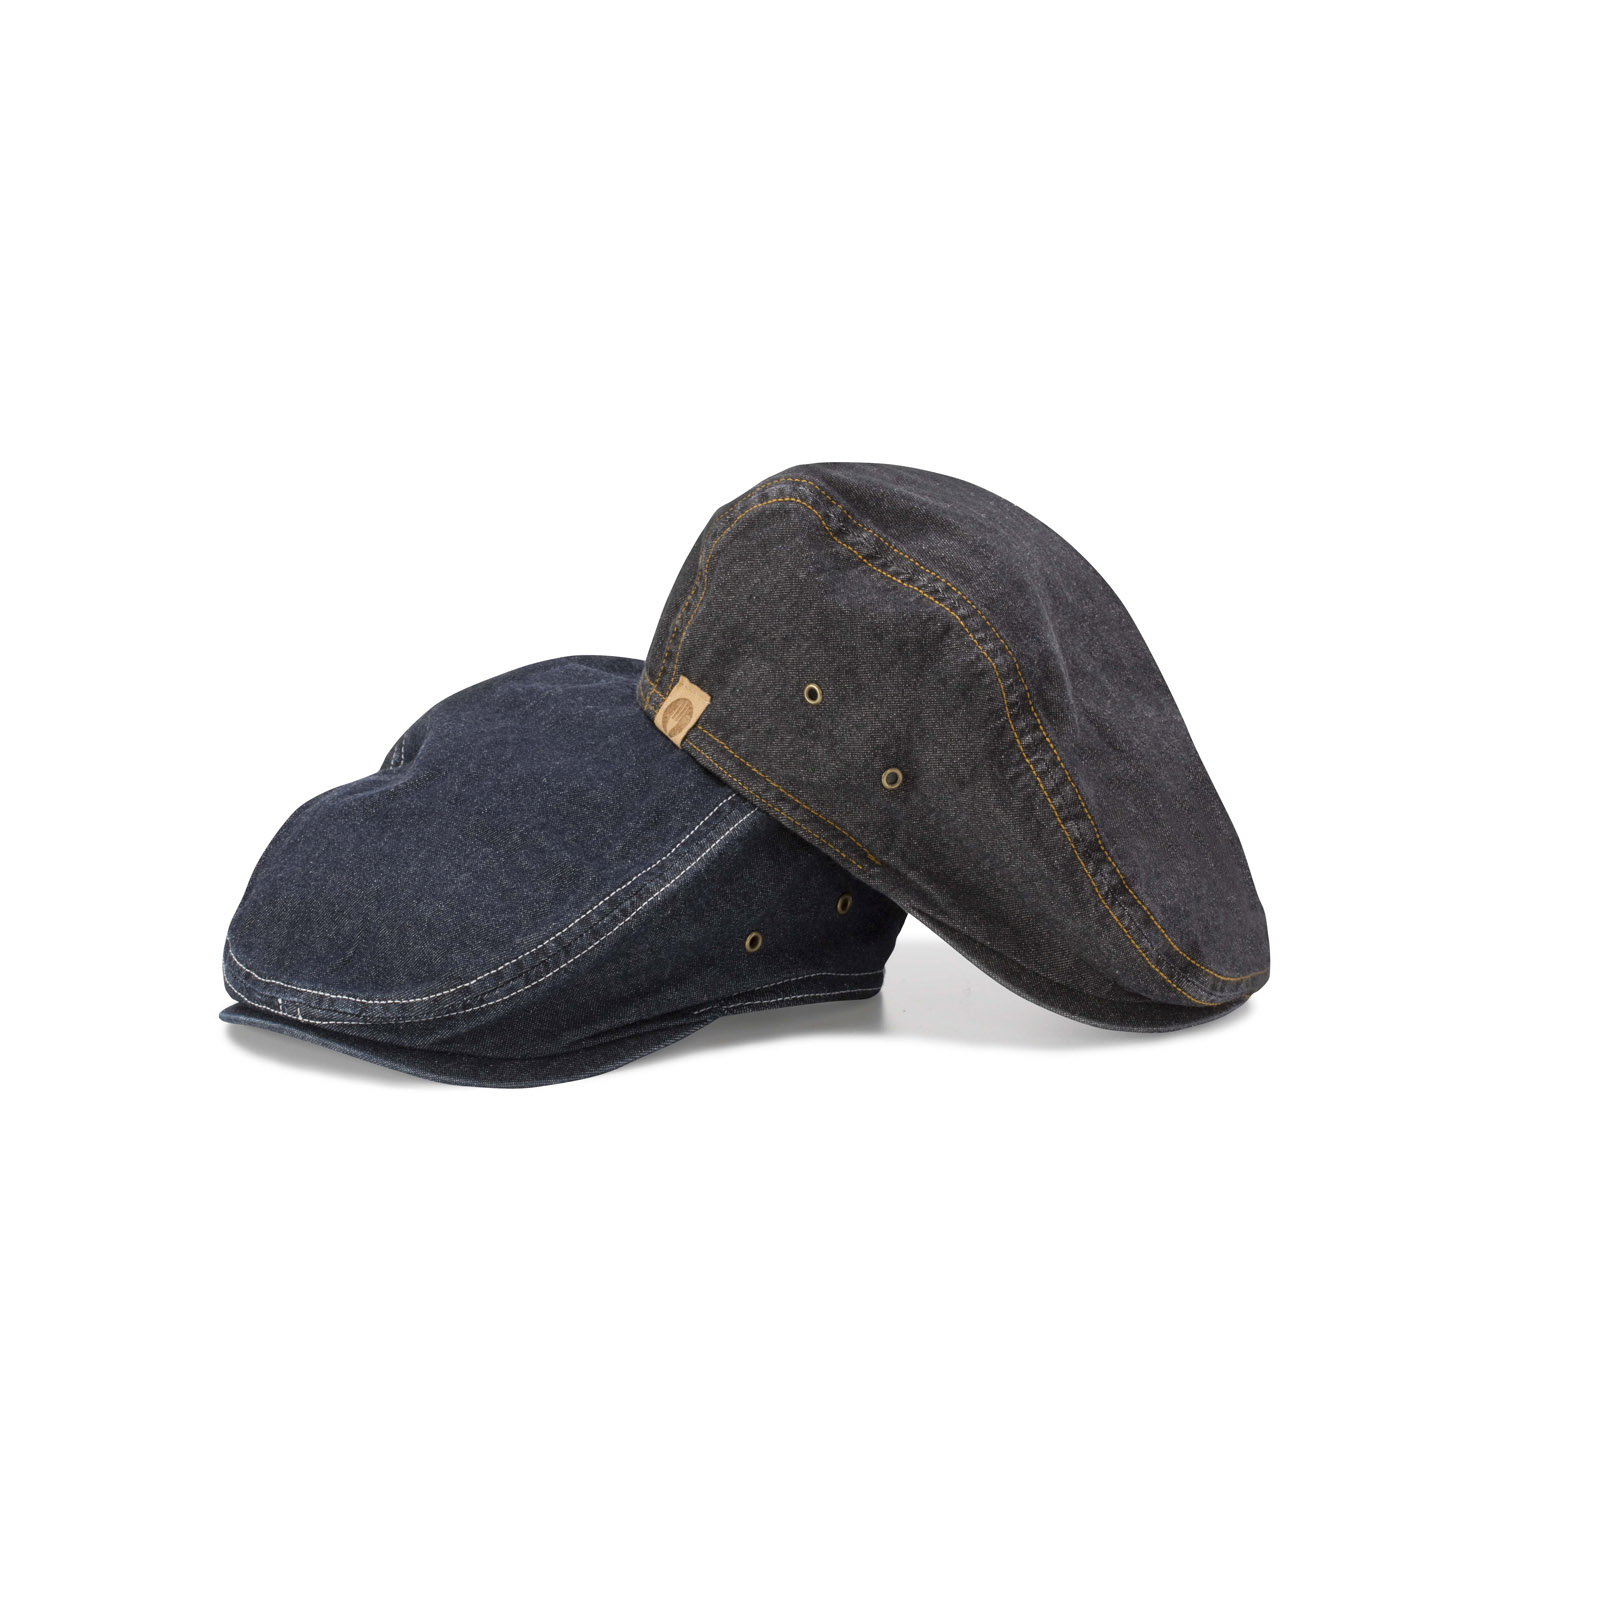 Chef Works HB006BLK0 chef's hat